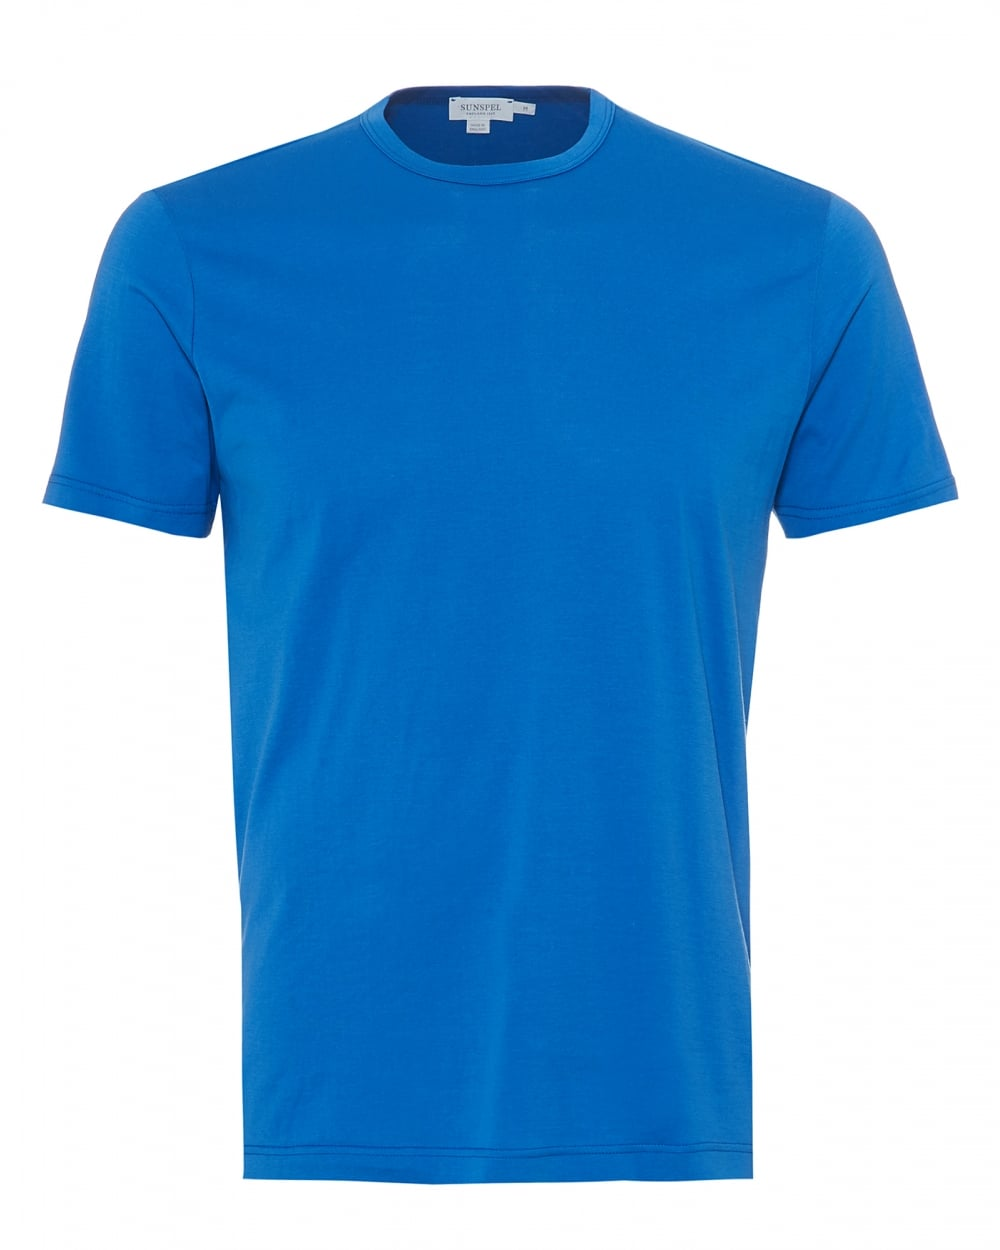 Sunspel mens plain t shirt 100 cotton klein blue tee for Mens 100 cotton t shirts